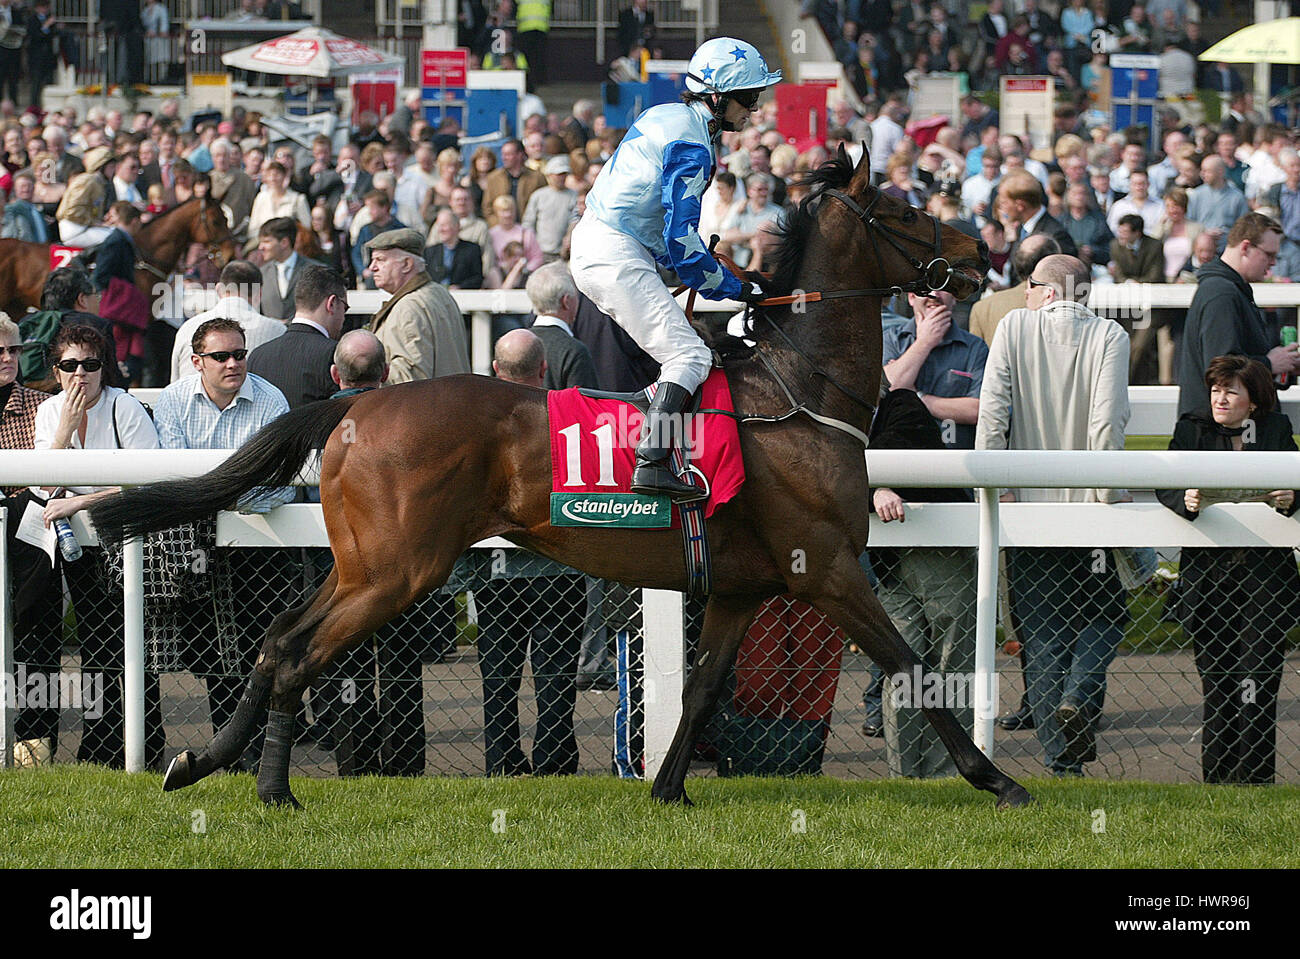 RESPLENDENT RIDDEN BY K.FALLON DONCASTER RACECOURSE DONCASTER 01 April 2005 - Stock Image